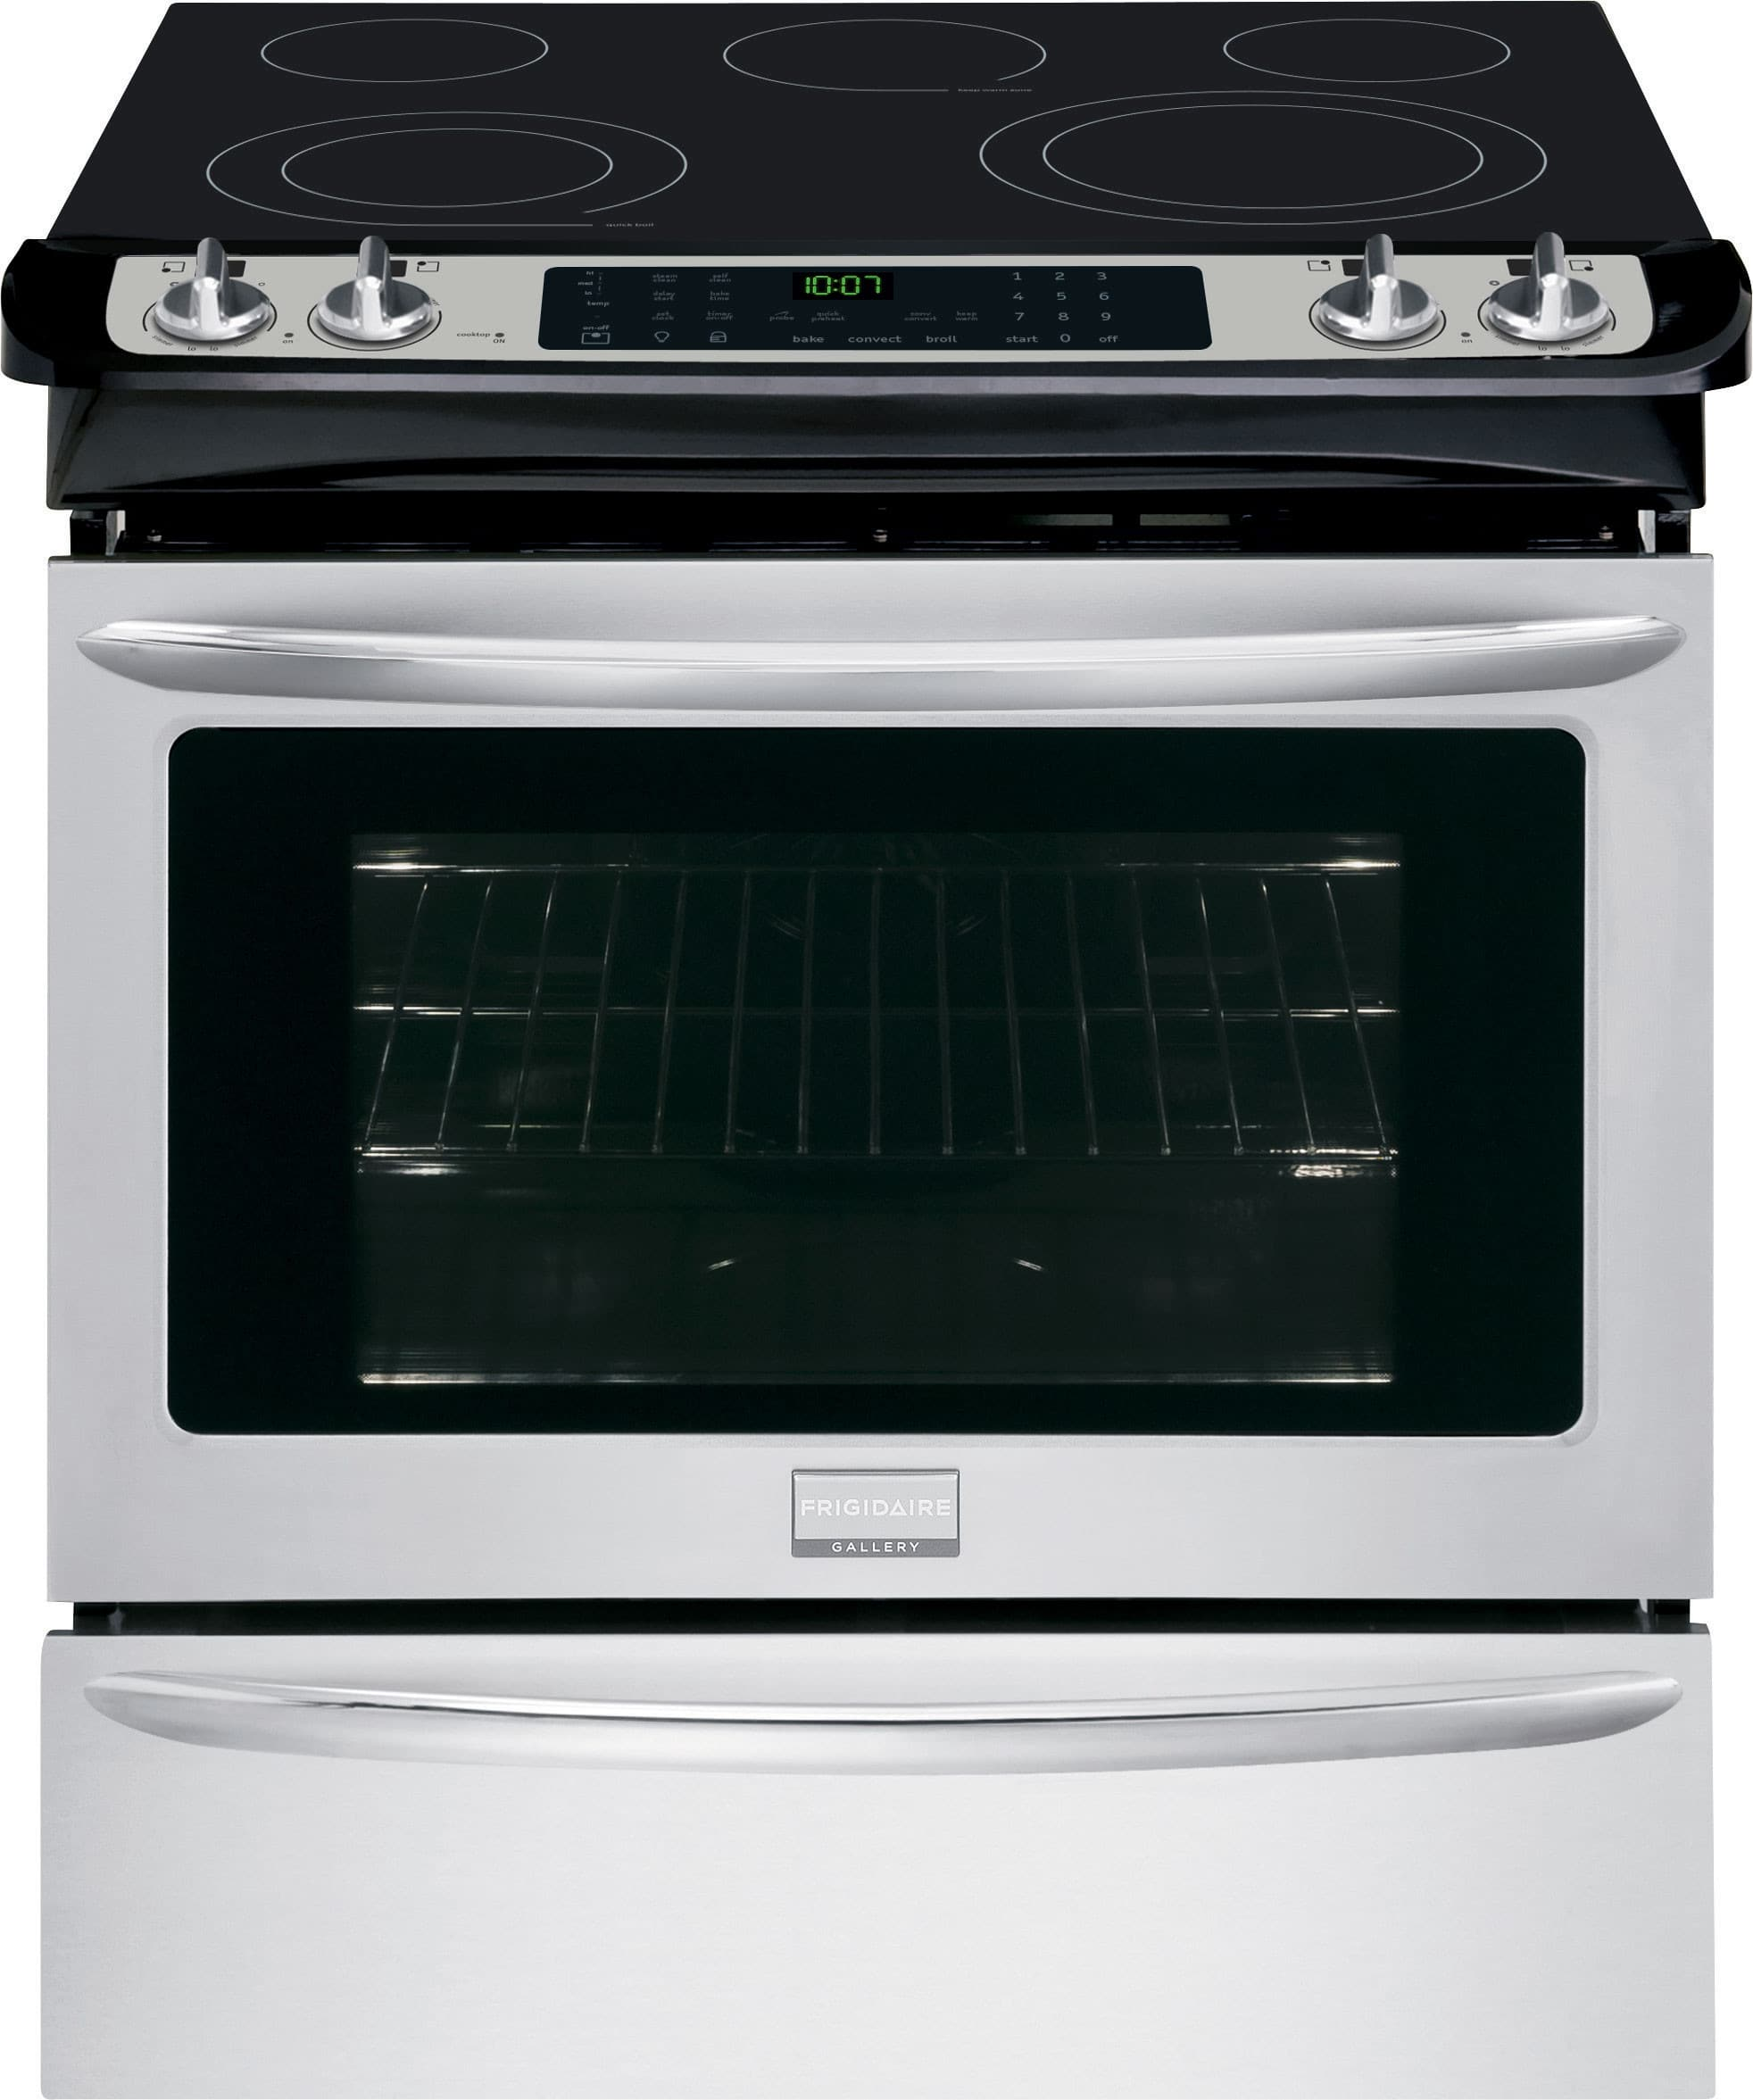 White apron gainesville fl - Frigidaire Fges3065pf 30 Inch Slide In Electric Range With True Convection Temperature Probe Steam Self Clean 5 Heating Elements Spacewise Elements